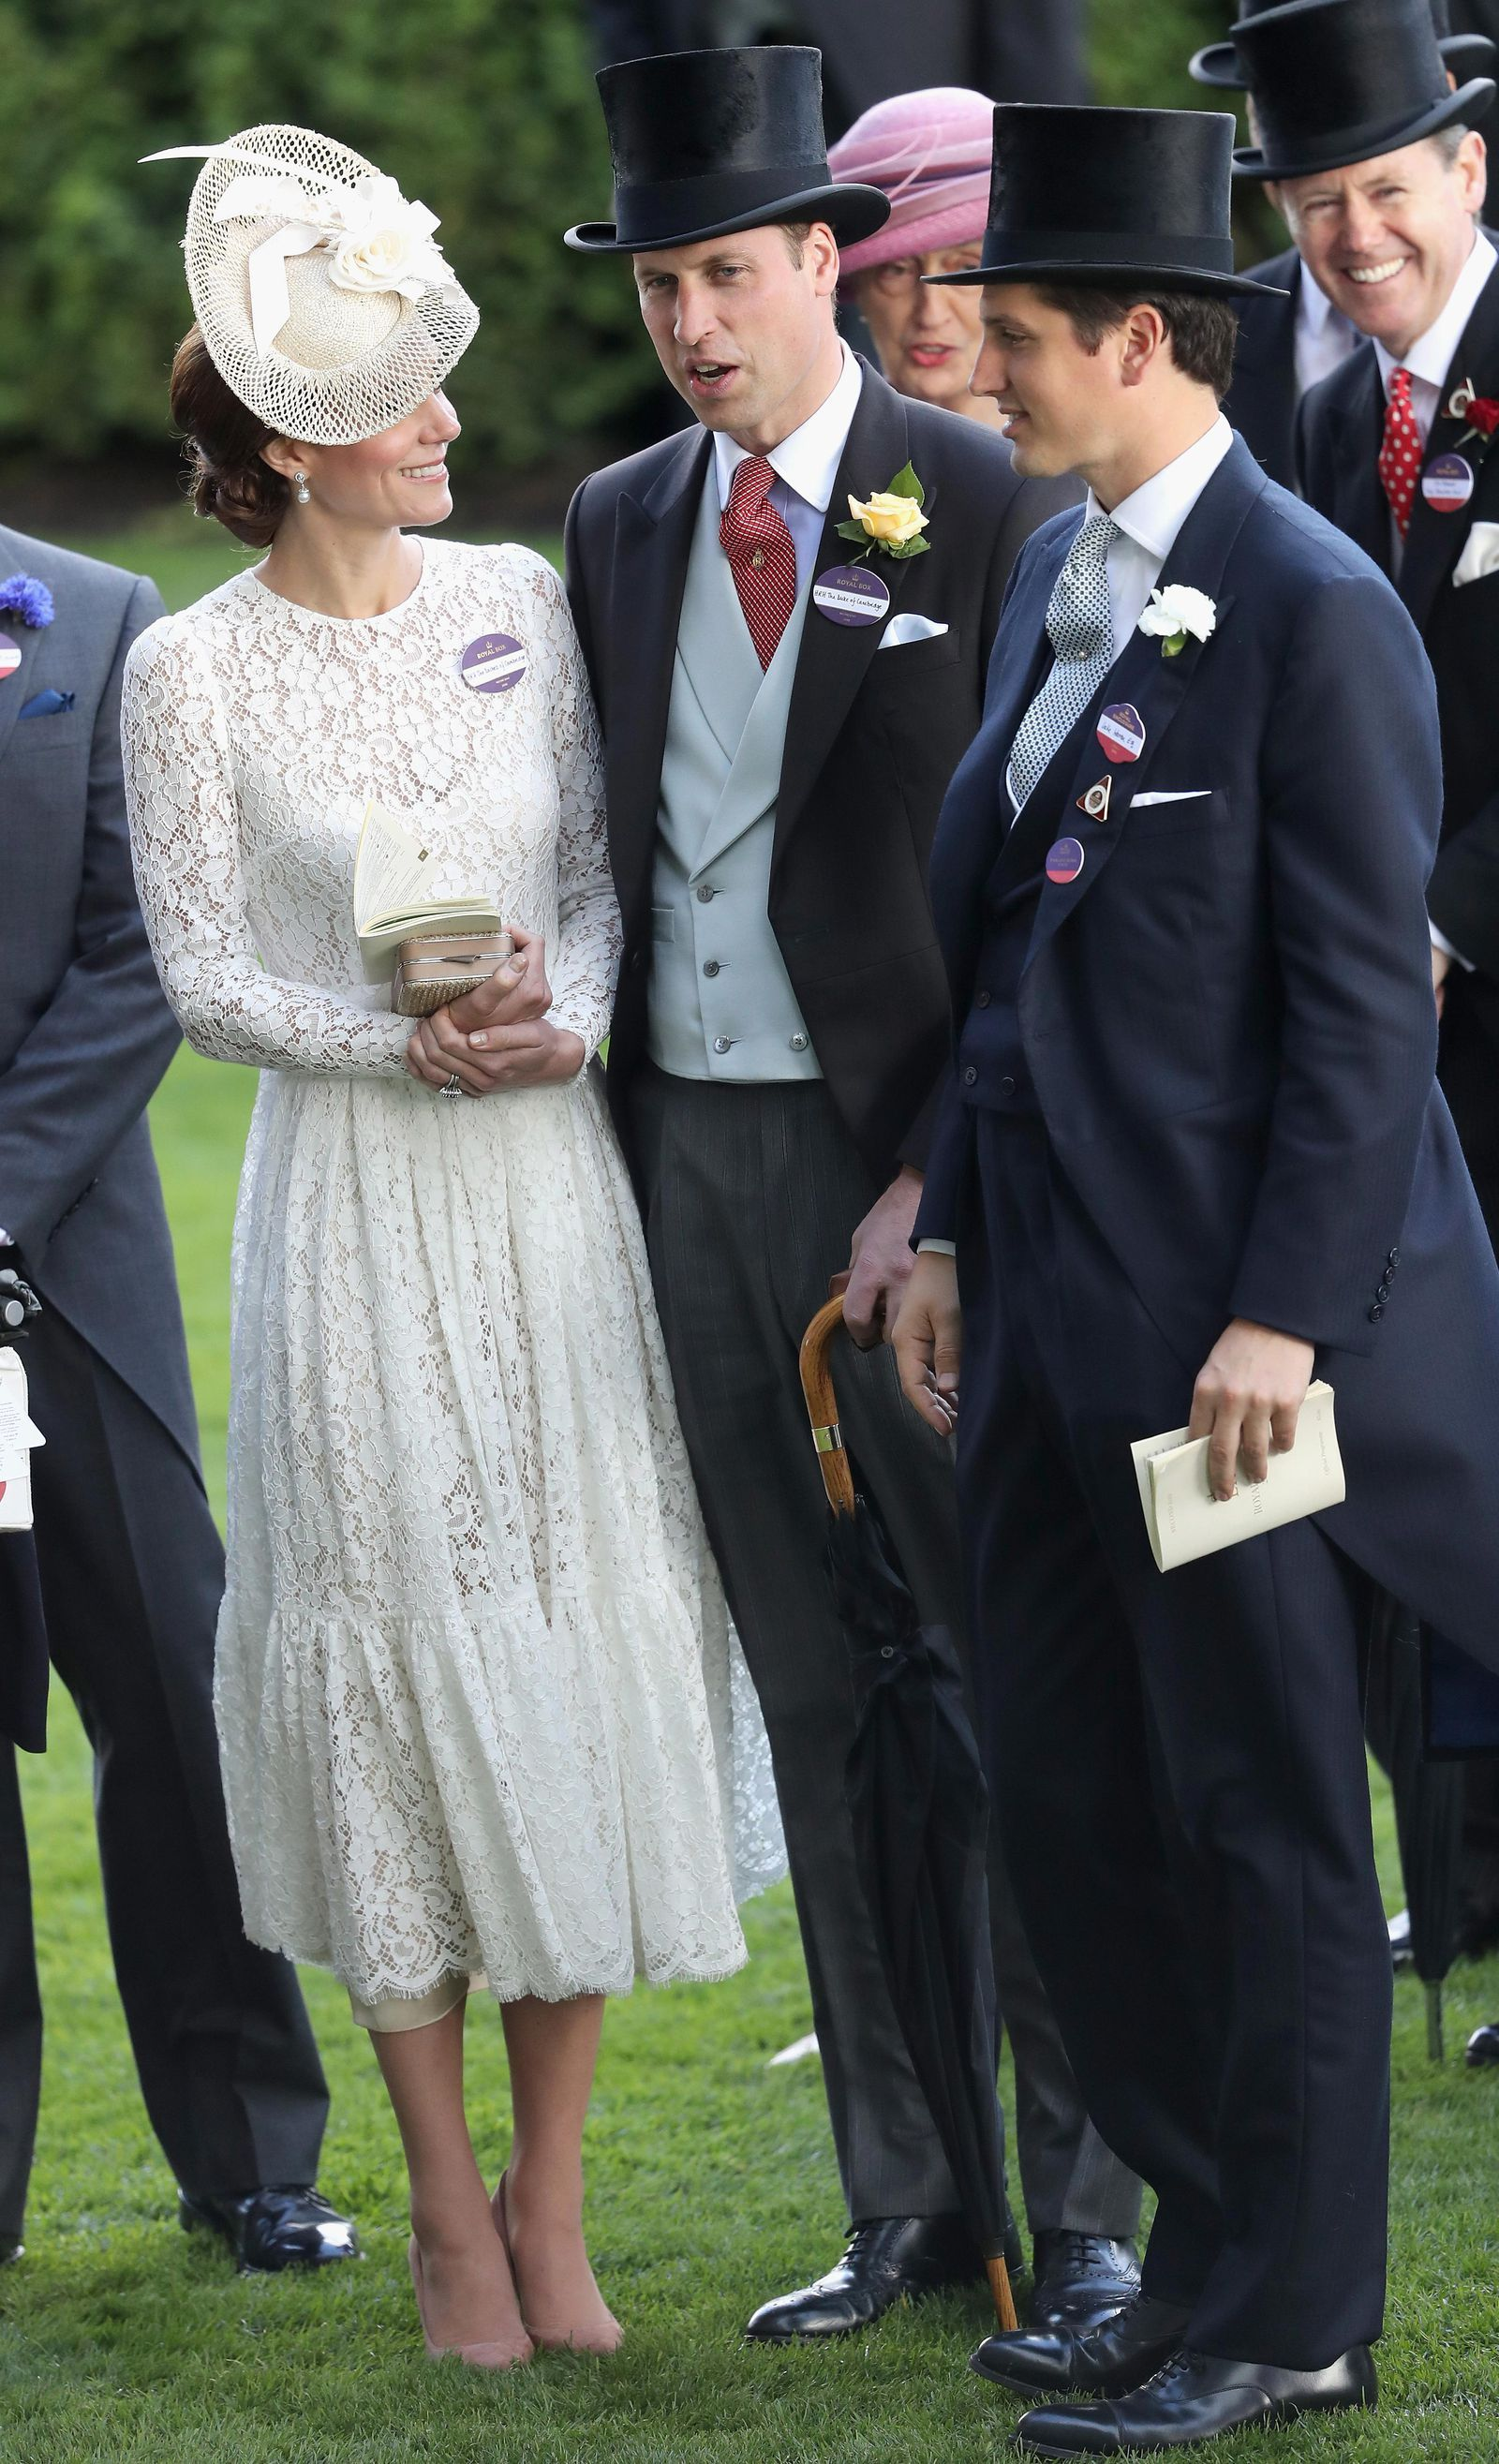 photo Here's why the Duke and Duchess of Cambridge's neighbours have complained